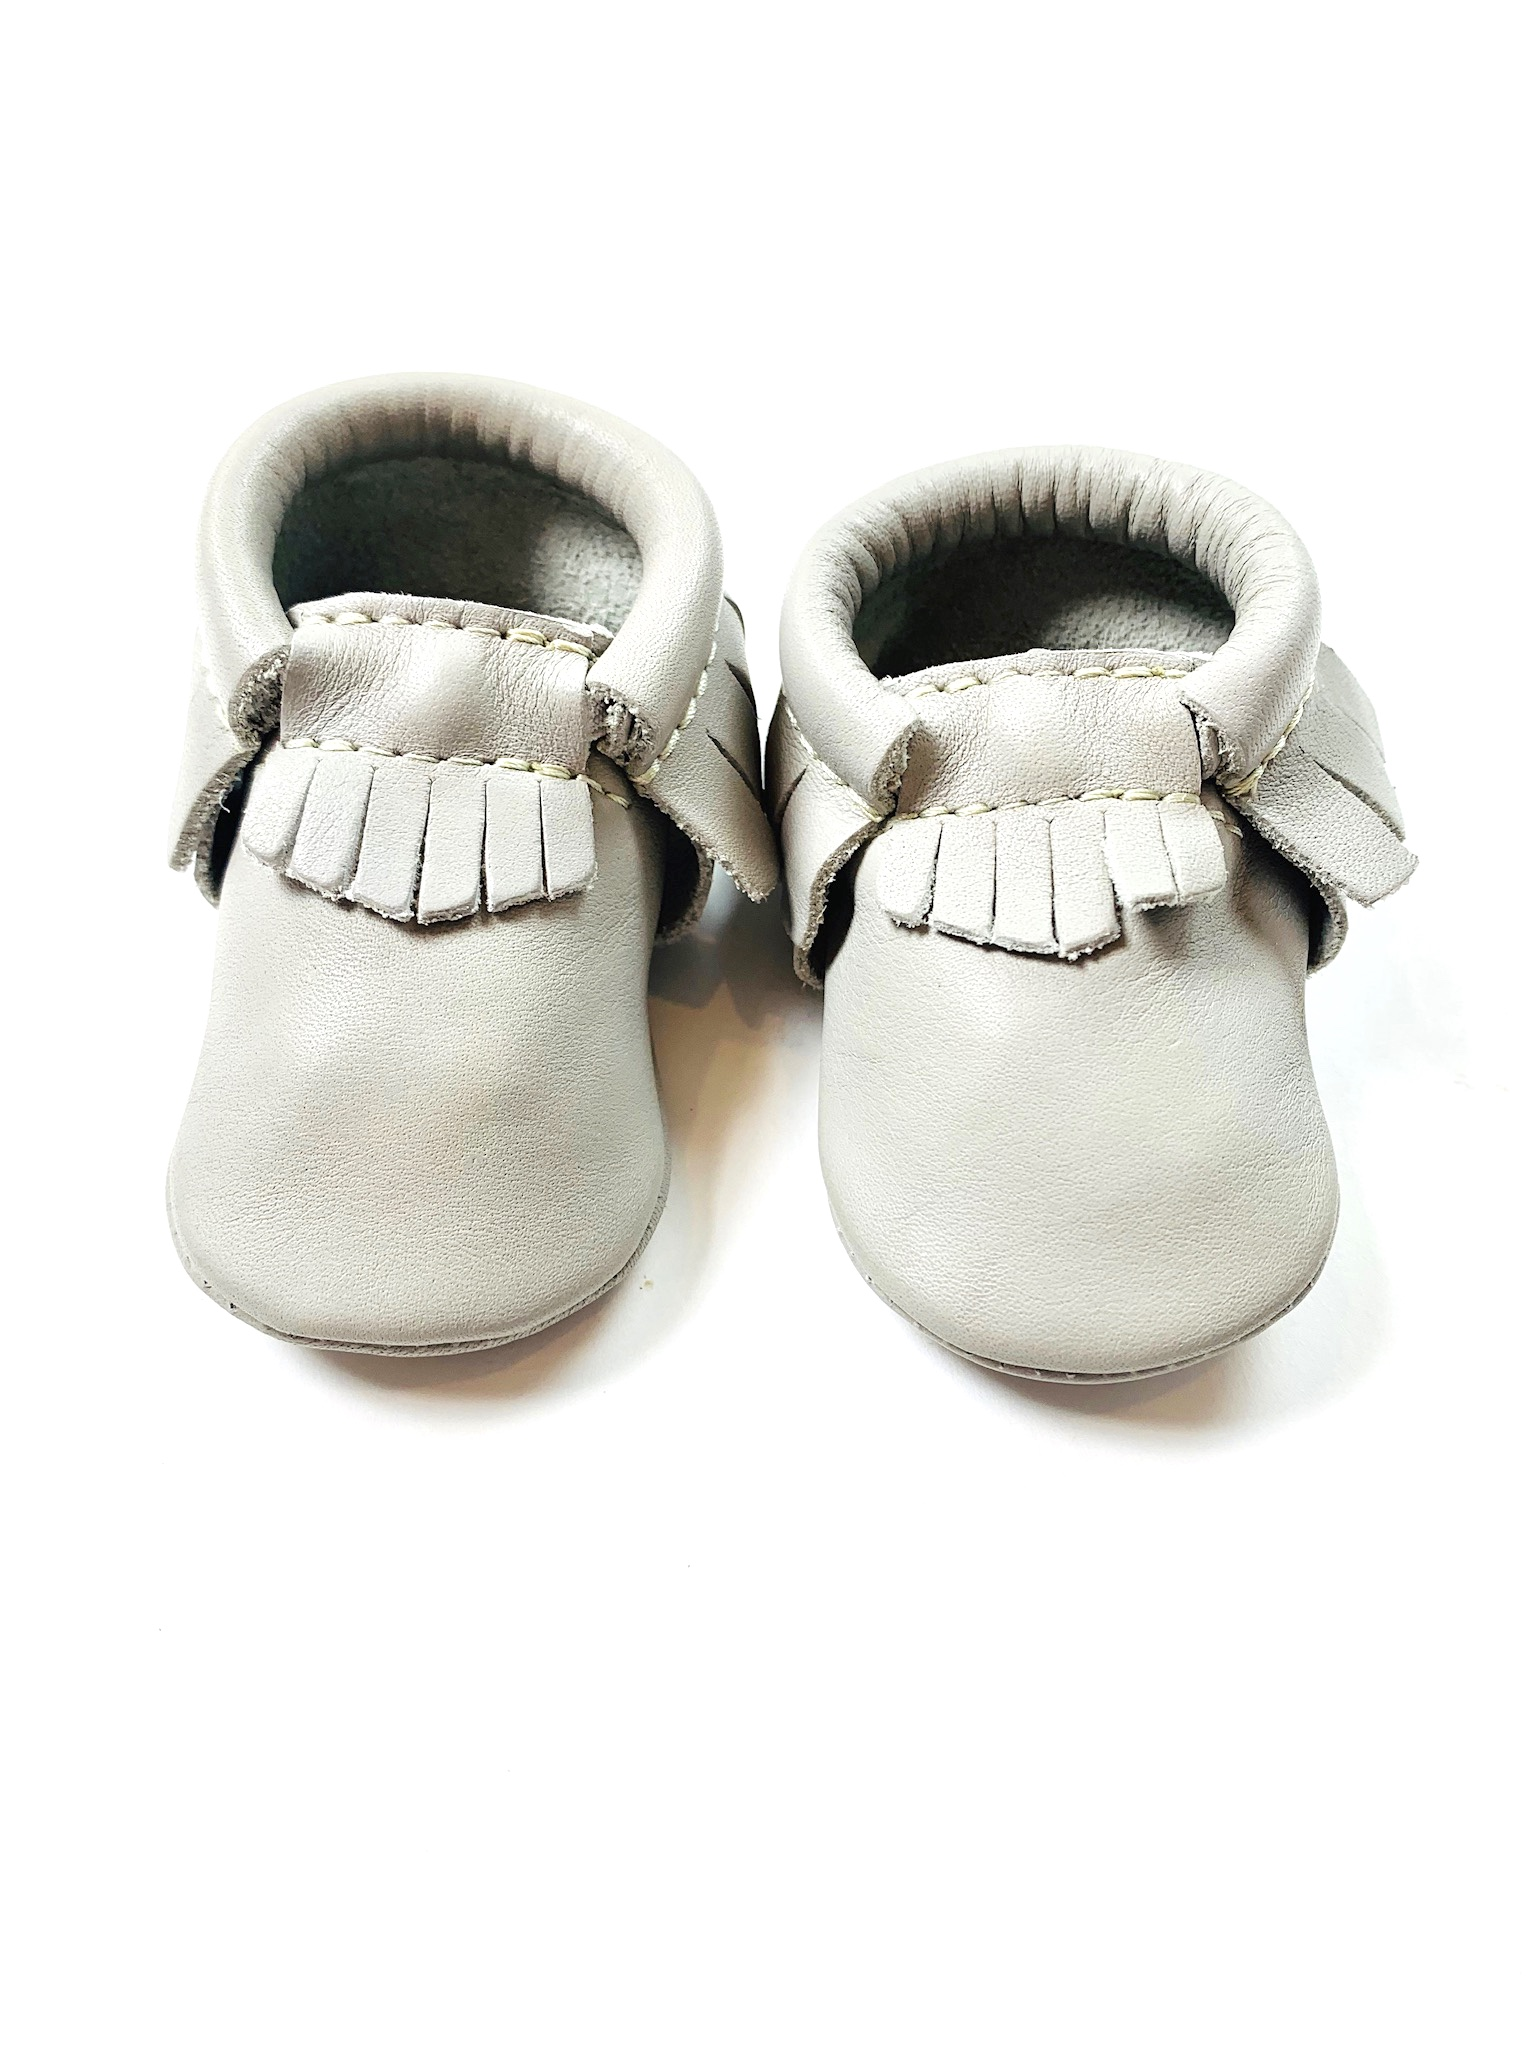 Freshly Picked 0-3 MO Shoes